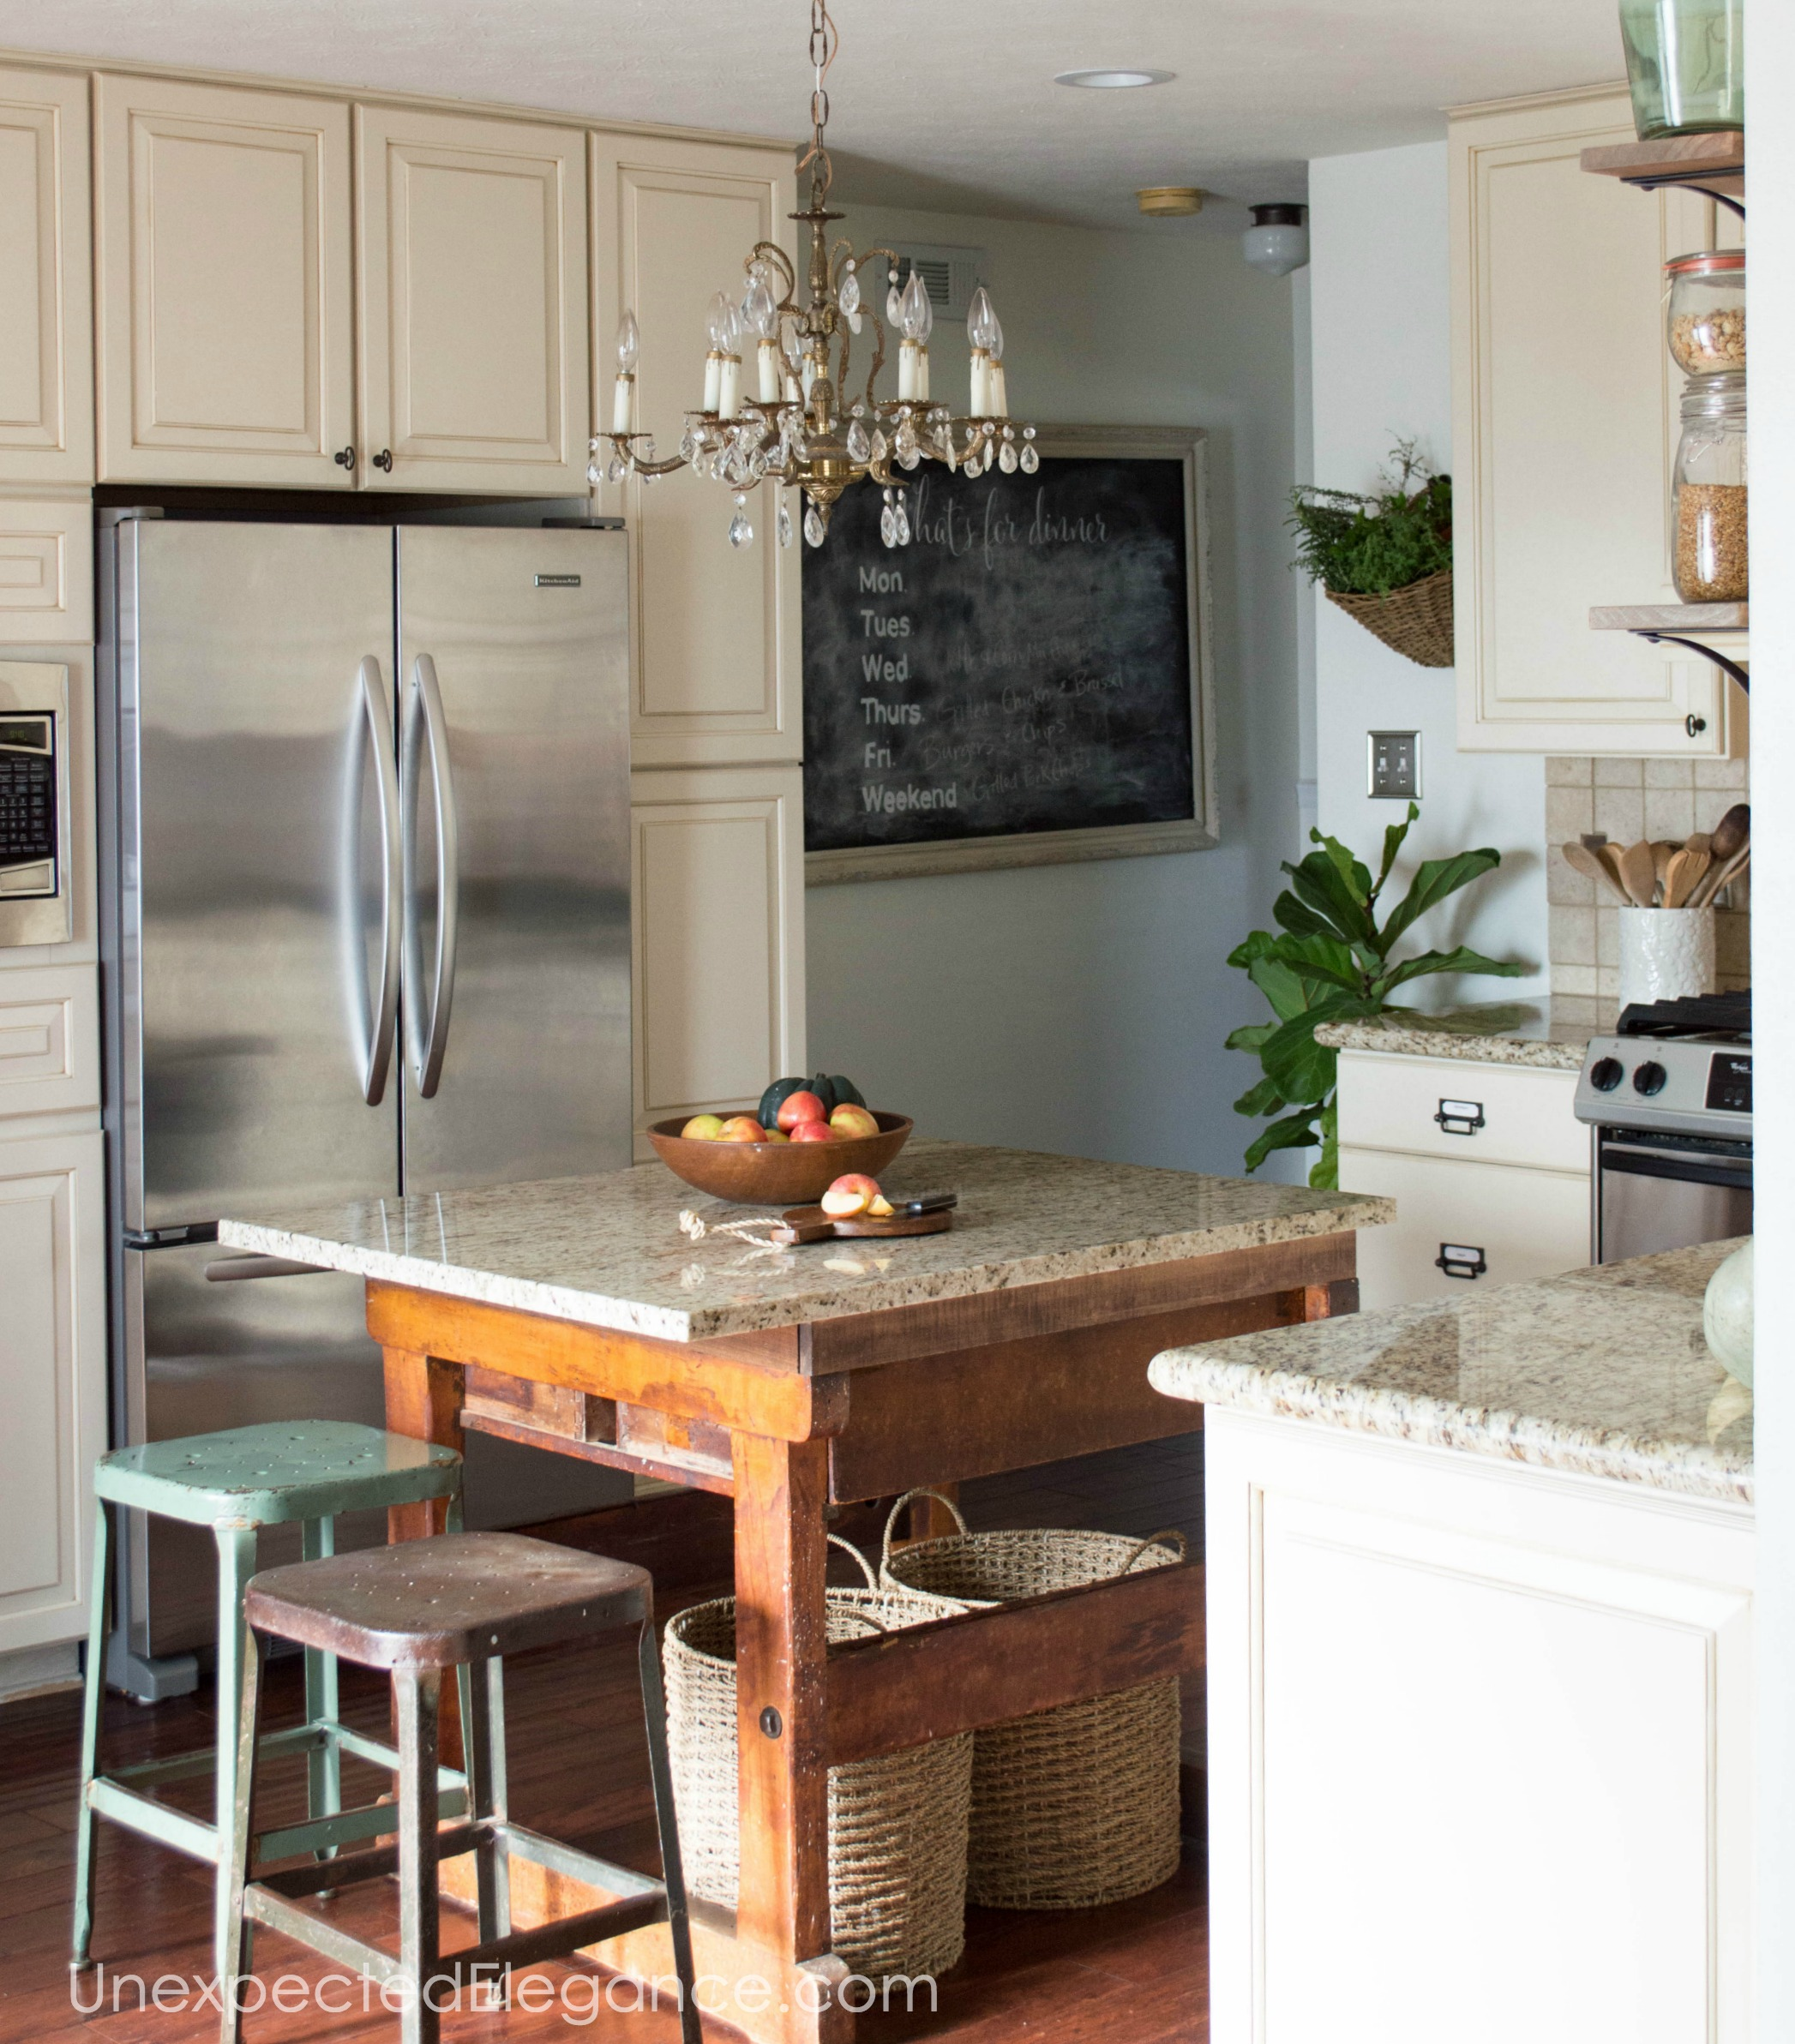 8 Ways to Update Kitchen Cabinets | Unexpected Elegance